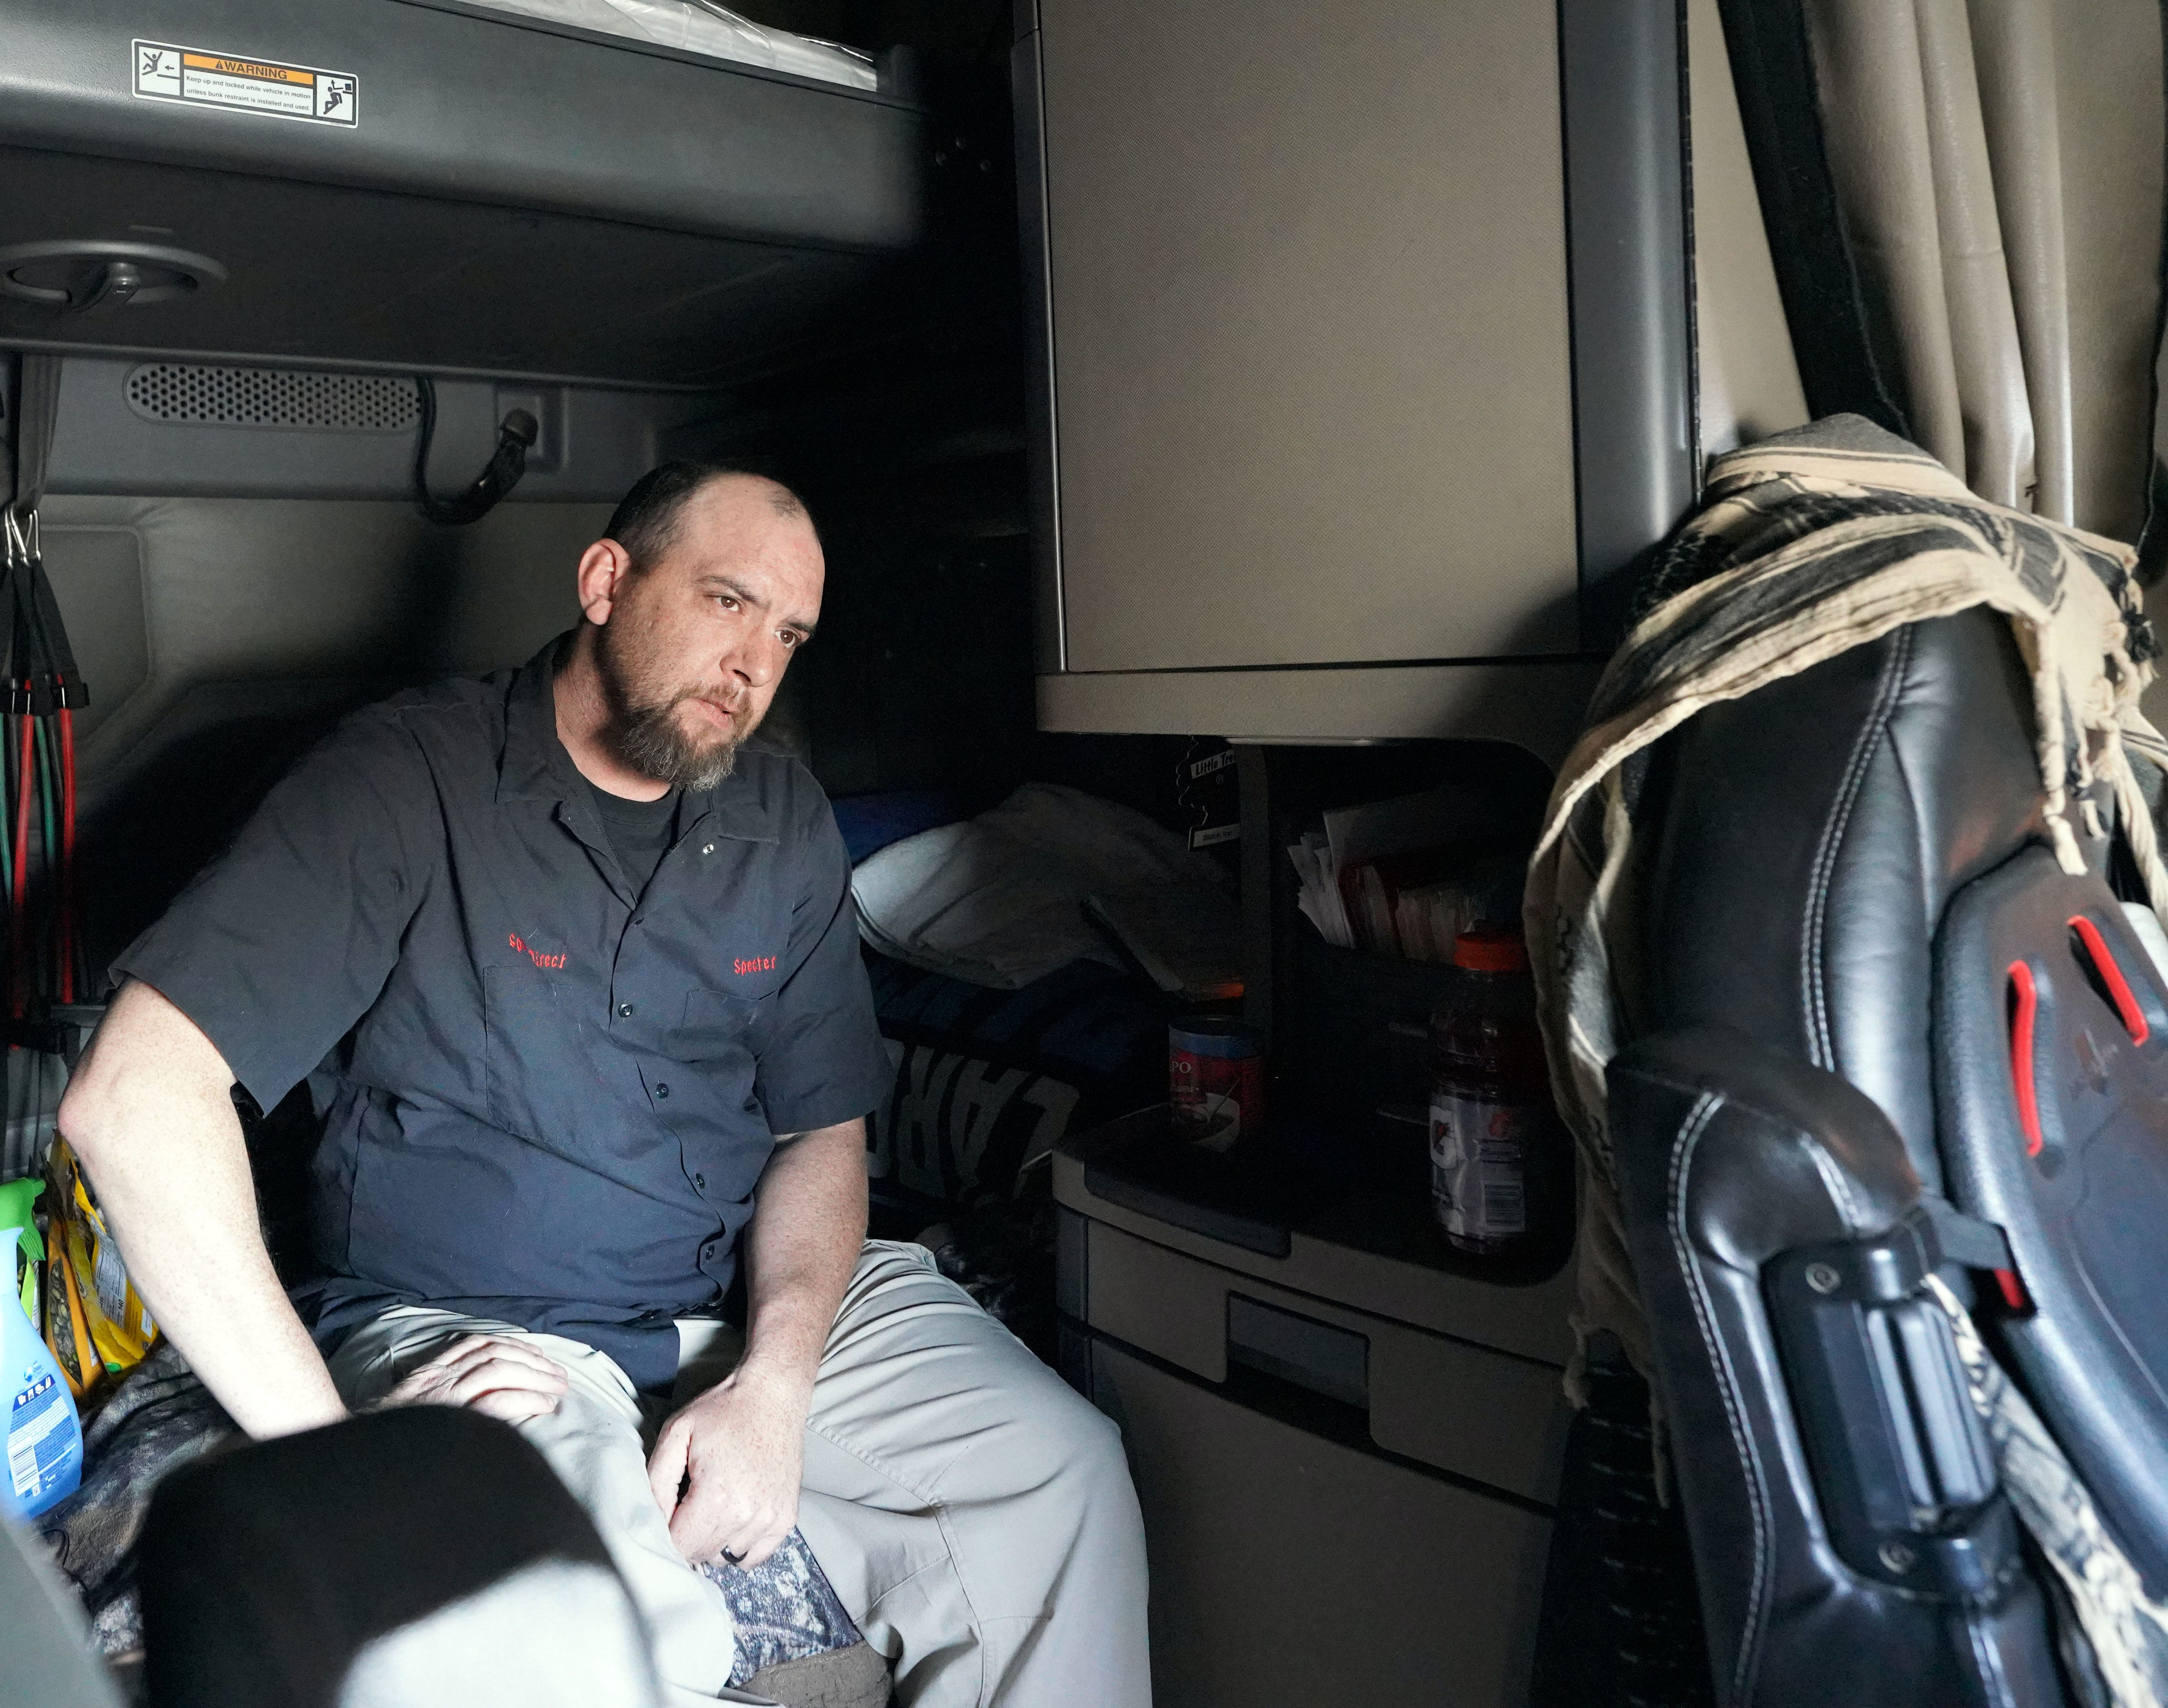 Trucker James Rodgers sits quietly in the cab of his Freightliner after kicking off his steel-toed boots following a long day of driving across Wyoming and to Salt Lake City